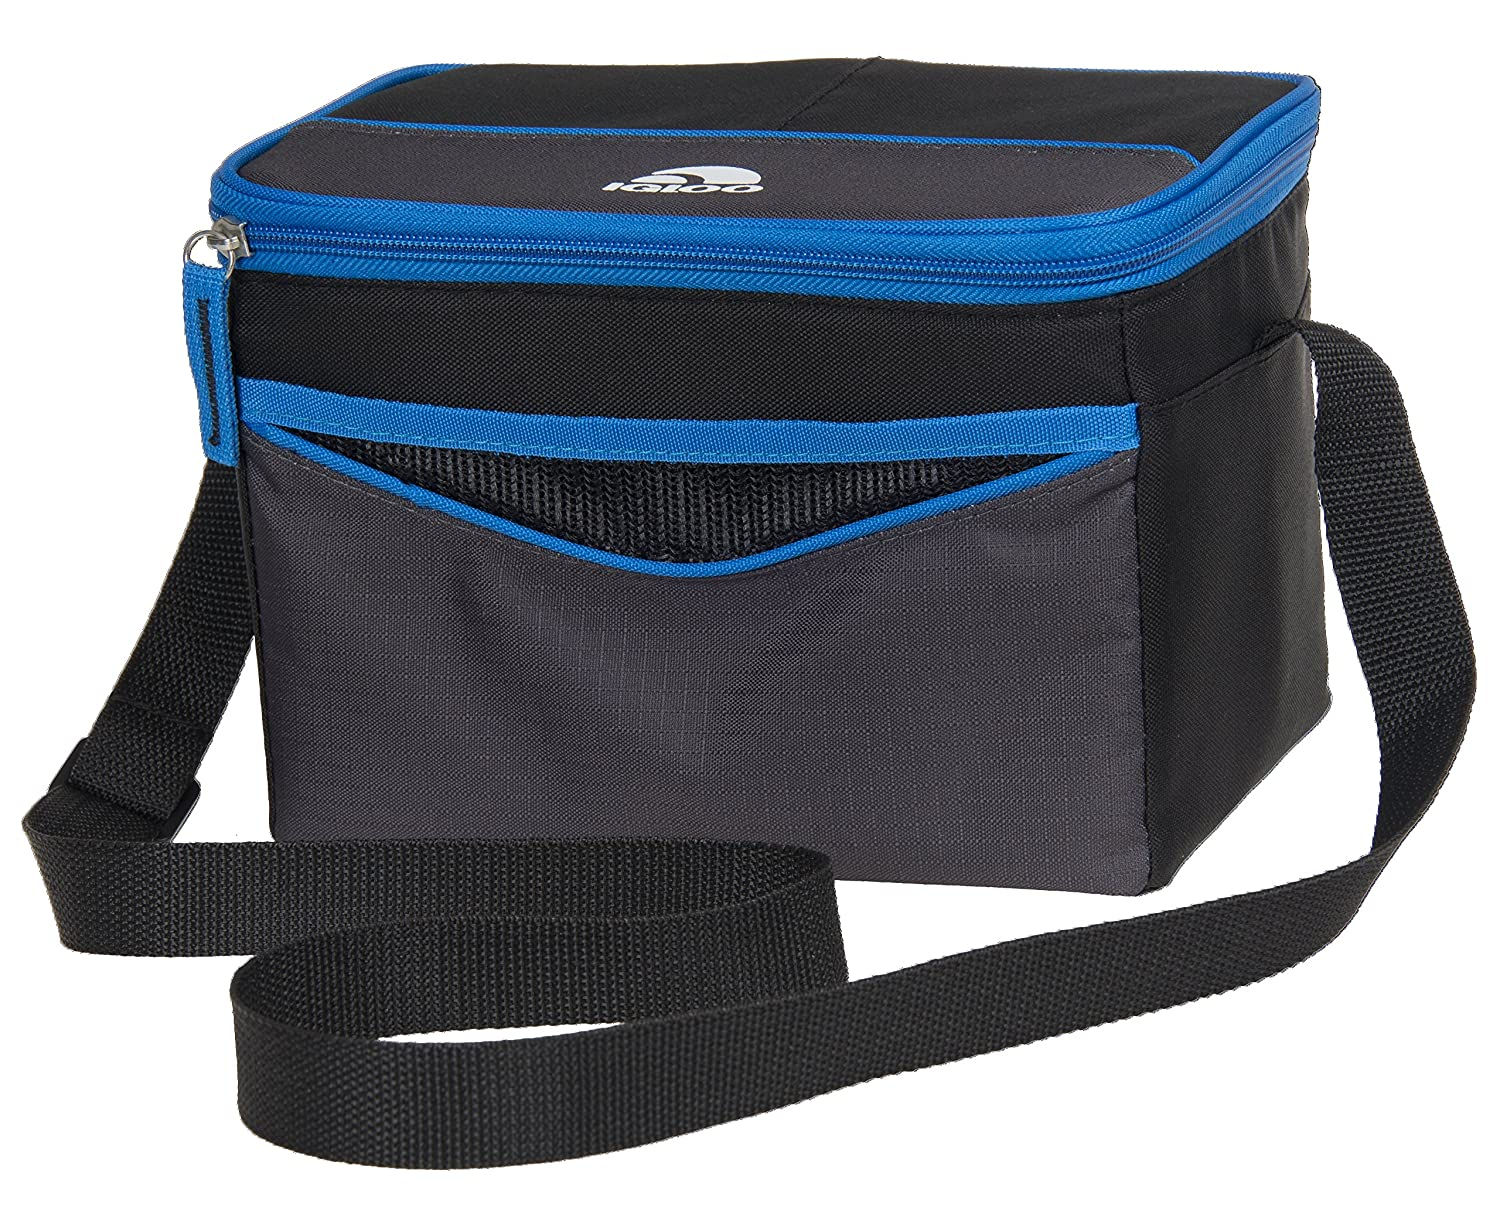 Igloo 62439 Collapse & Cool 6 Tech Basic, Black/Blue, 6 Cans